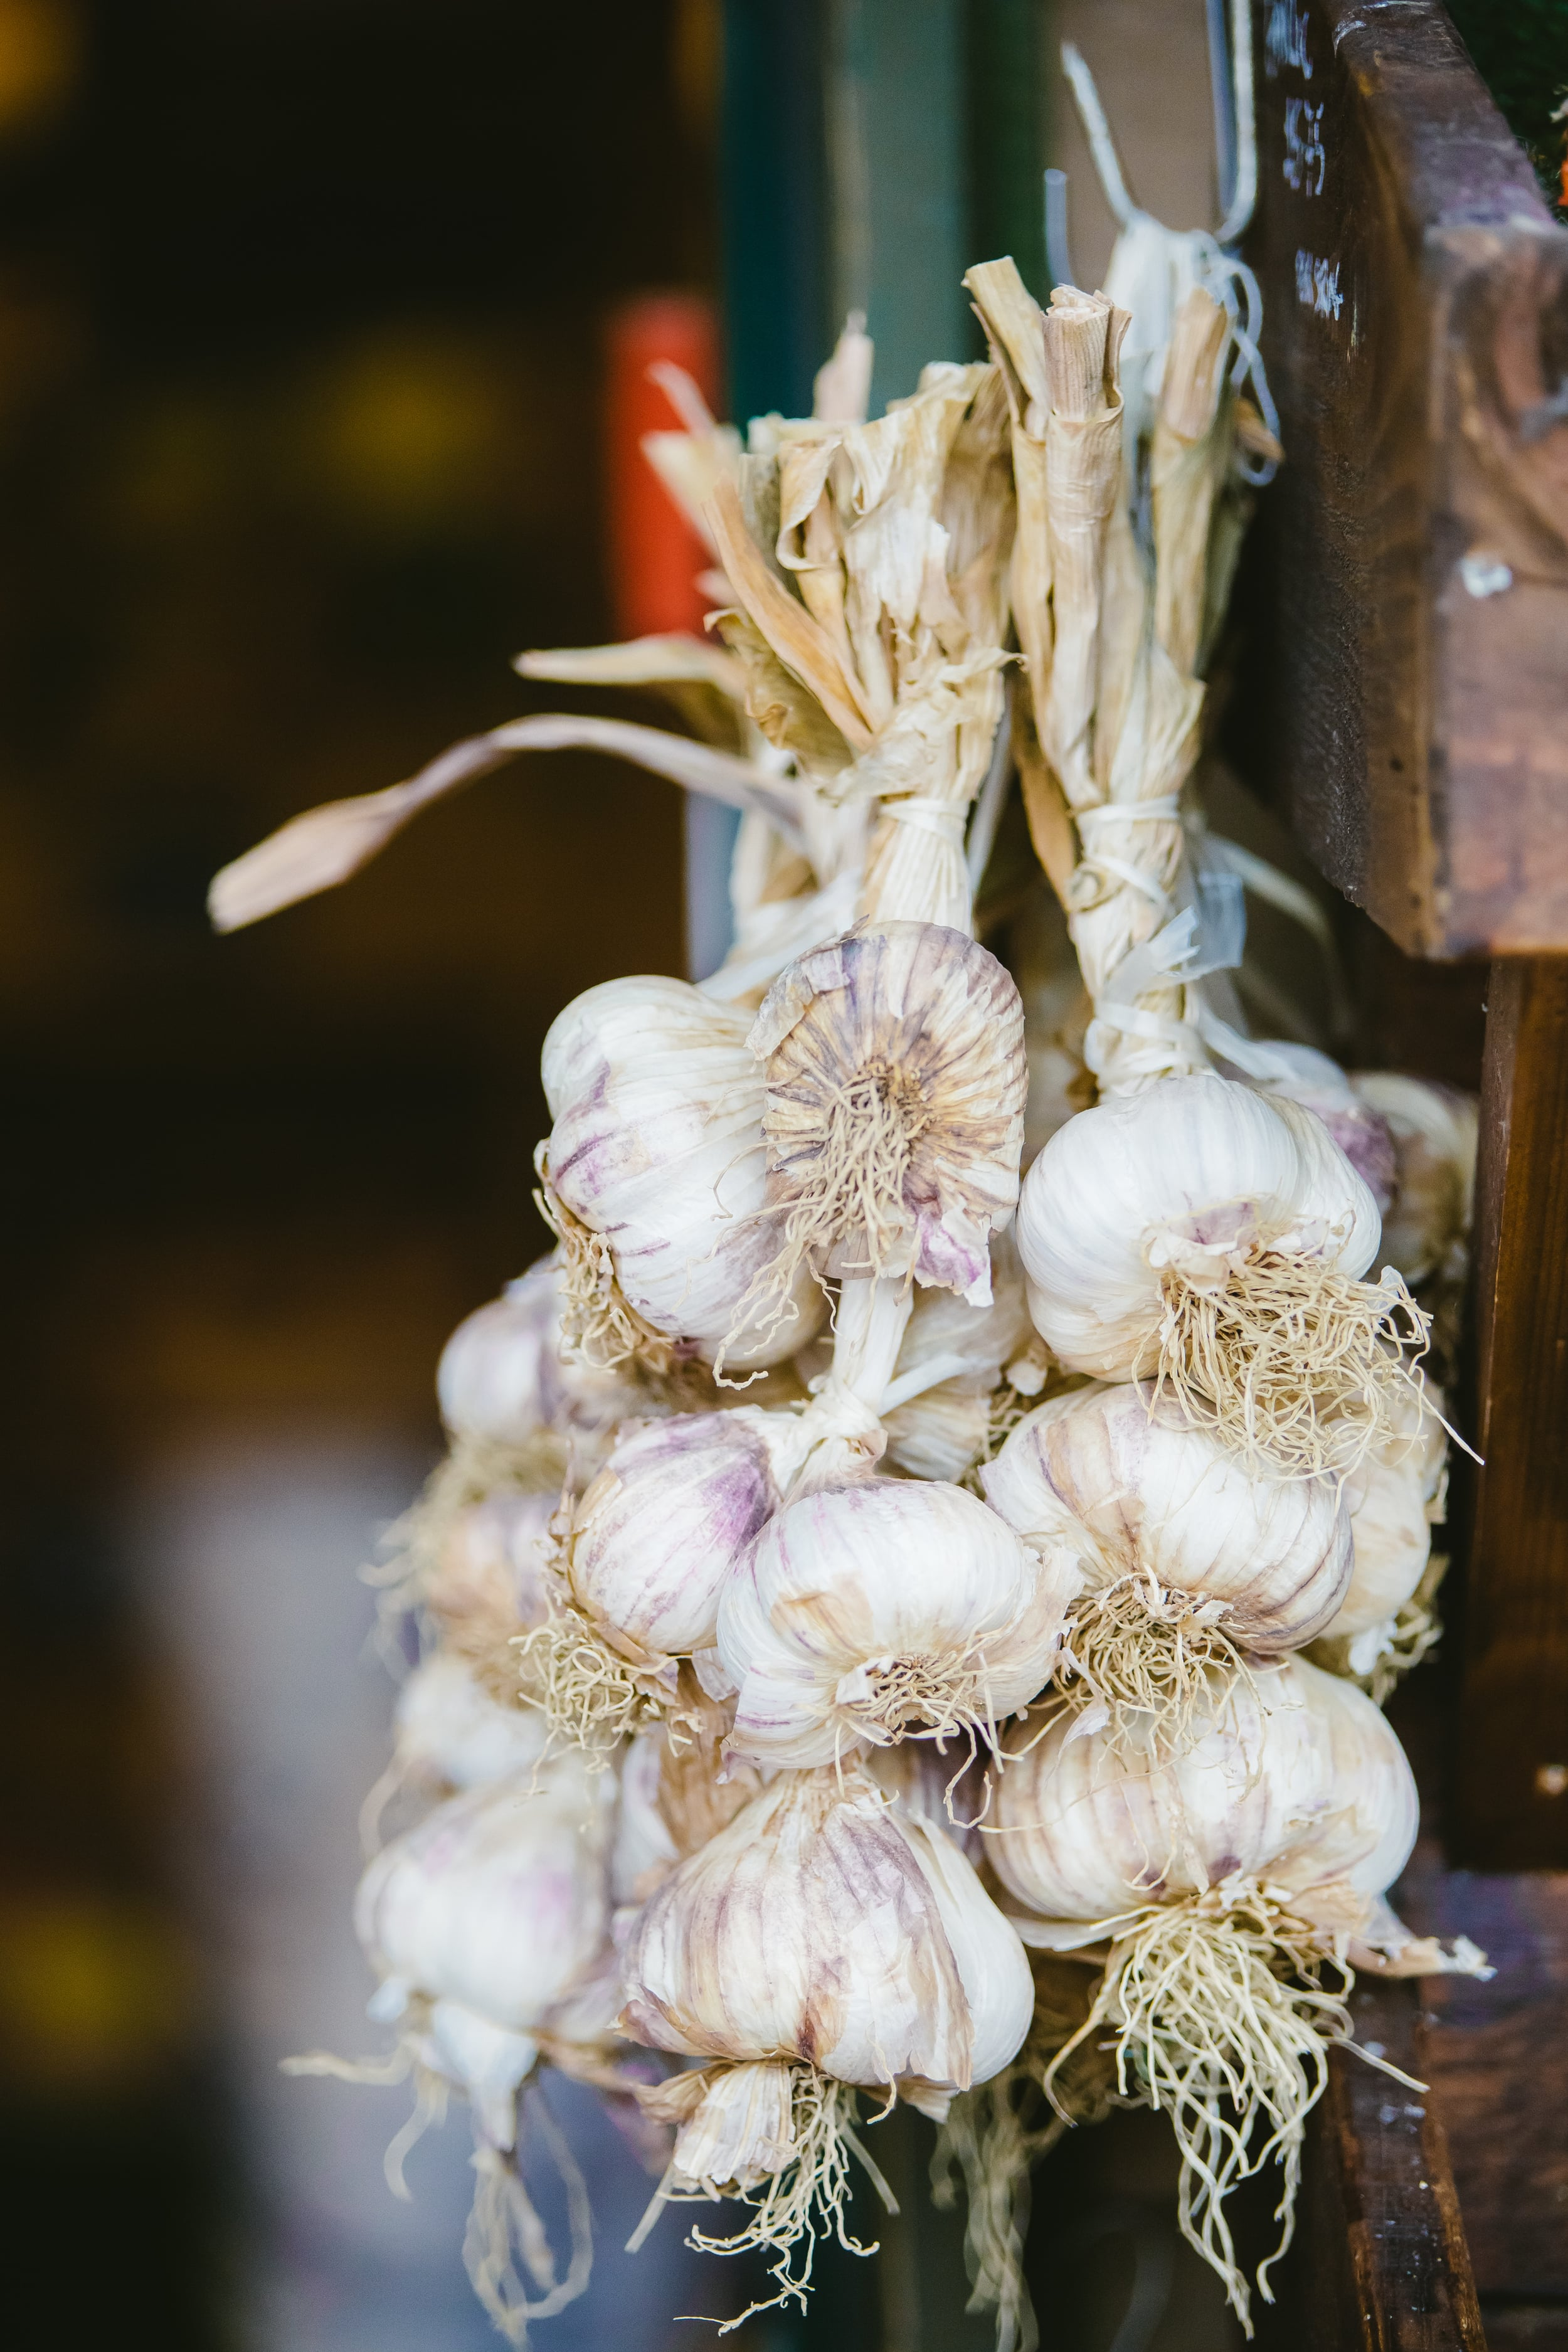 Cobbs-food-farm-shop-local-produce-london-winchester-photography-0003.jpg